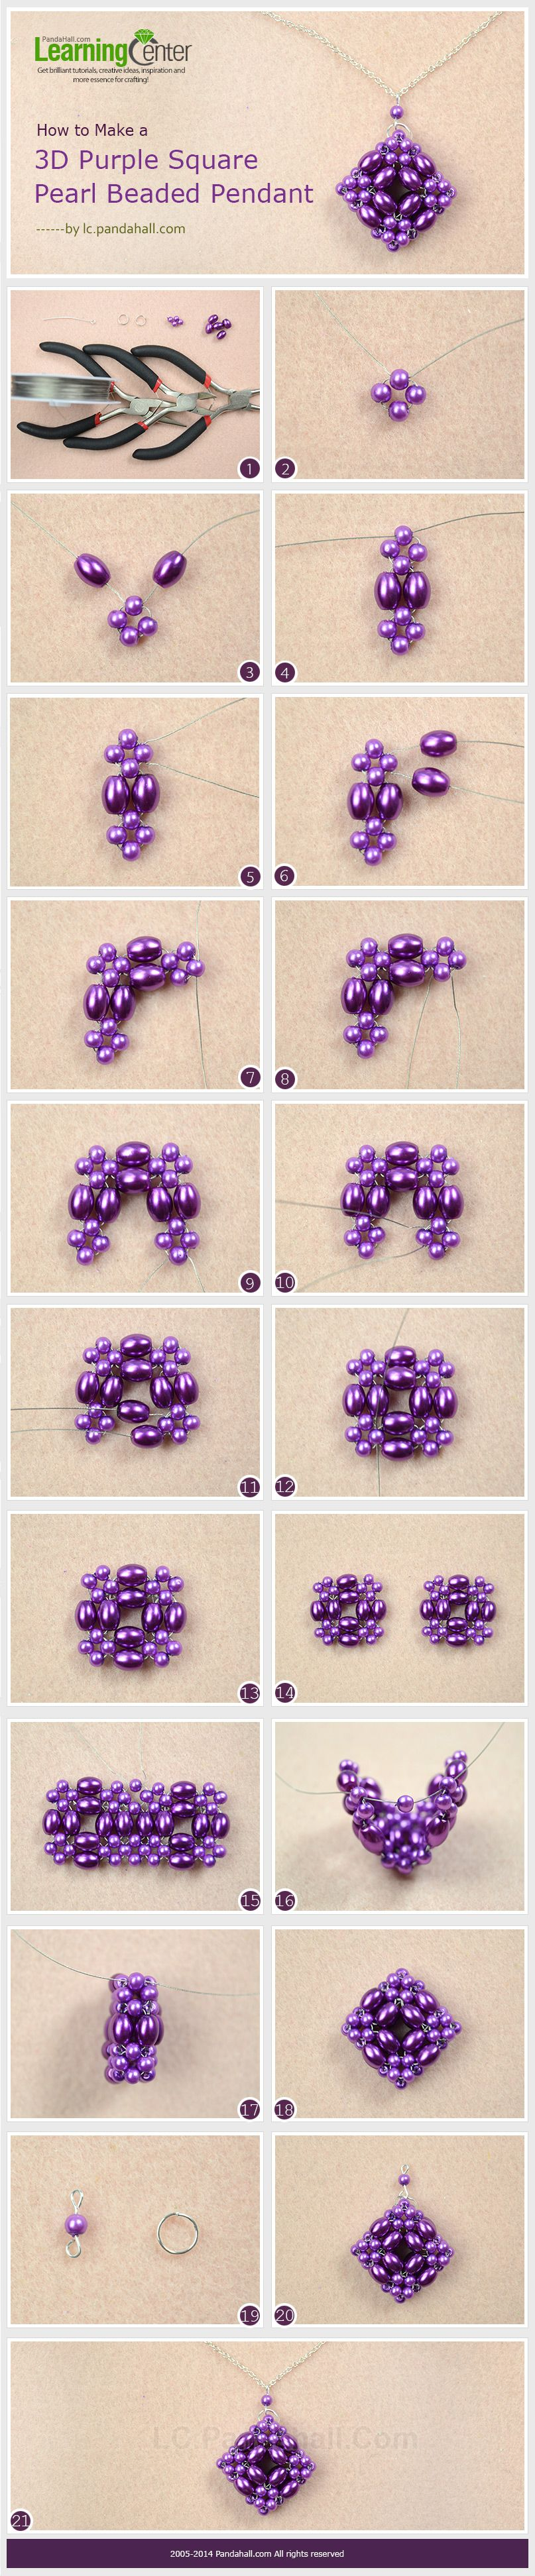 How to make a 3d purple square pearl beaded pendant jewelry making how to make a 3d purple square pearl beaded pendant aloadofball Image collections